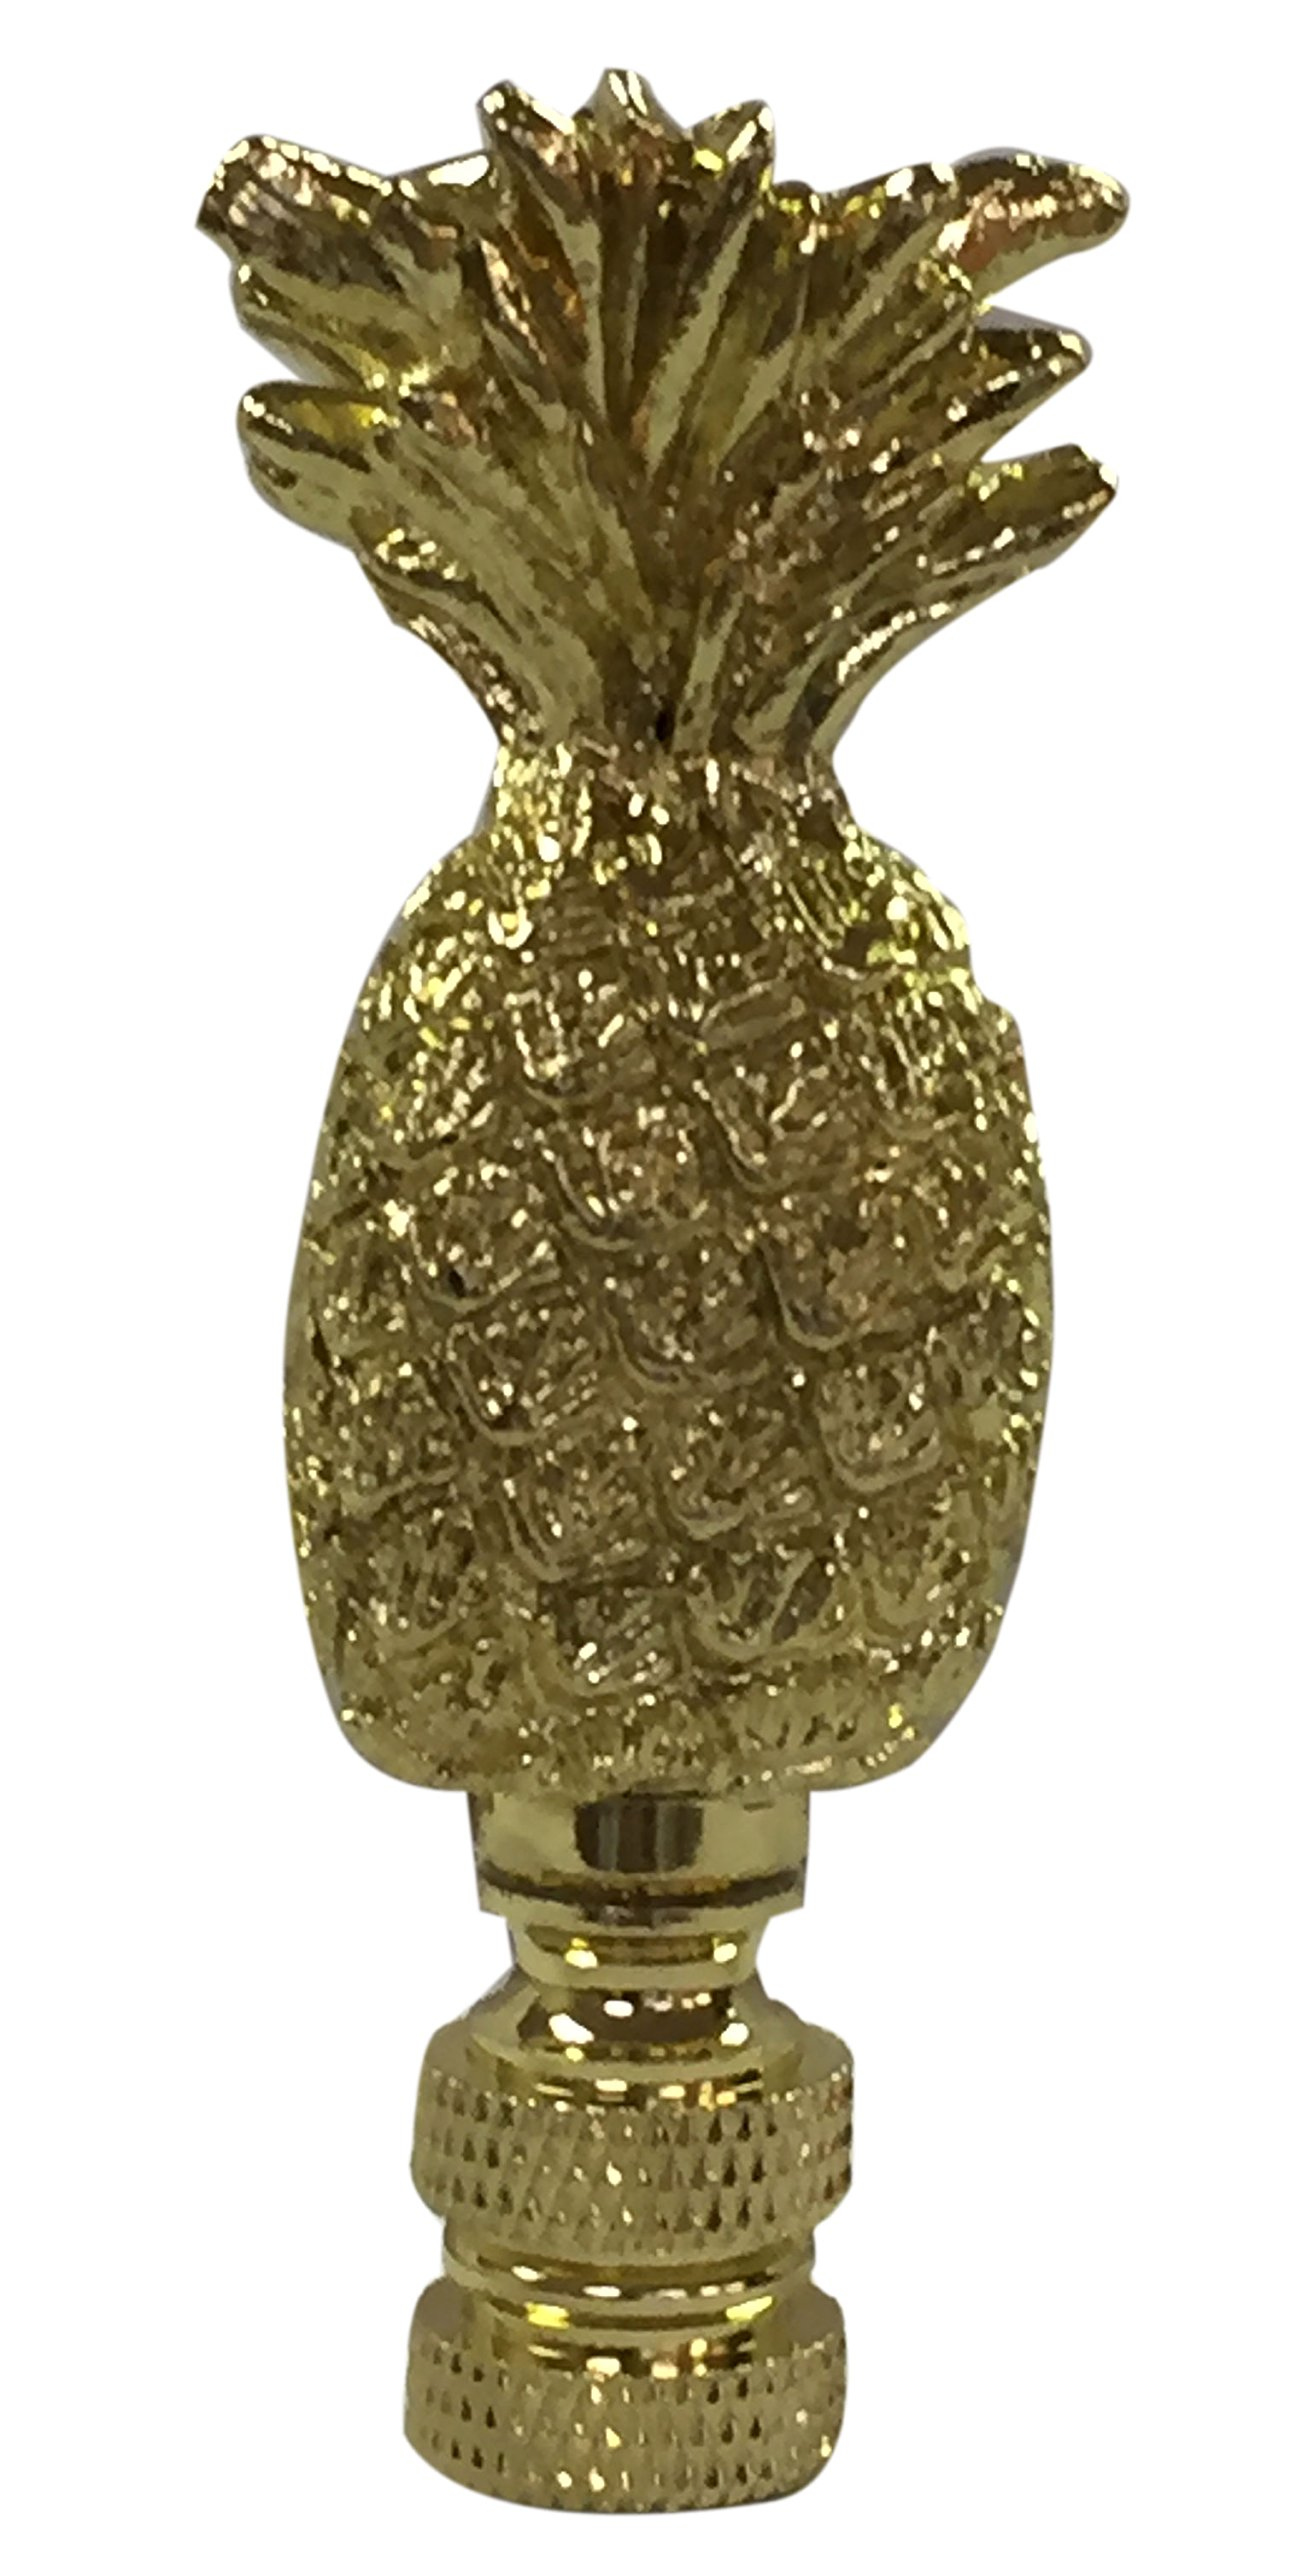 Royal Designs Trendy Resort Pineapple Lamp Finial for Lamp Shade- Polished Brass by Royal Designs, Inc (Image #1)